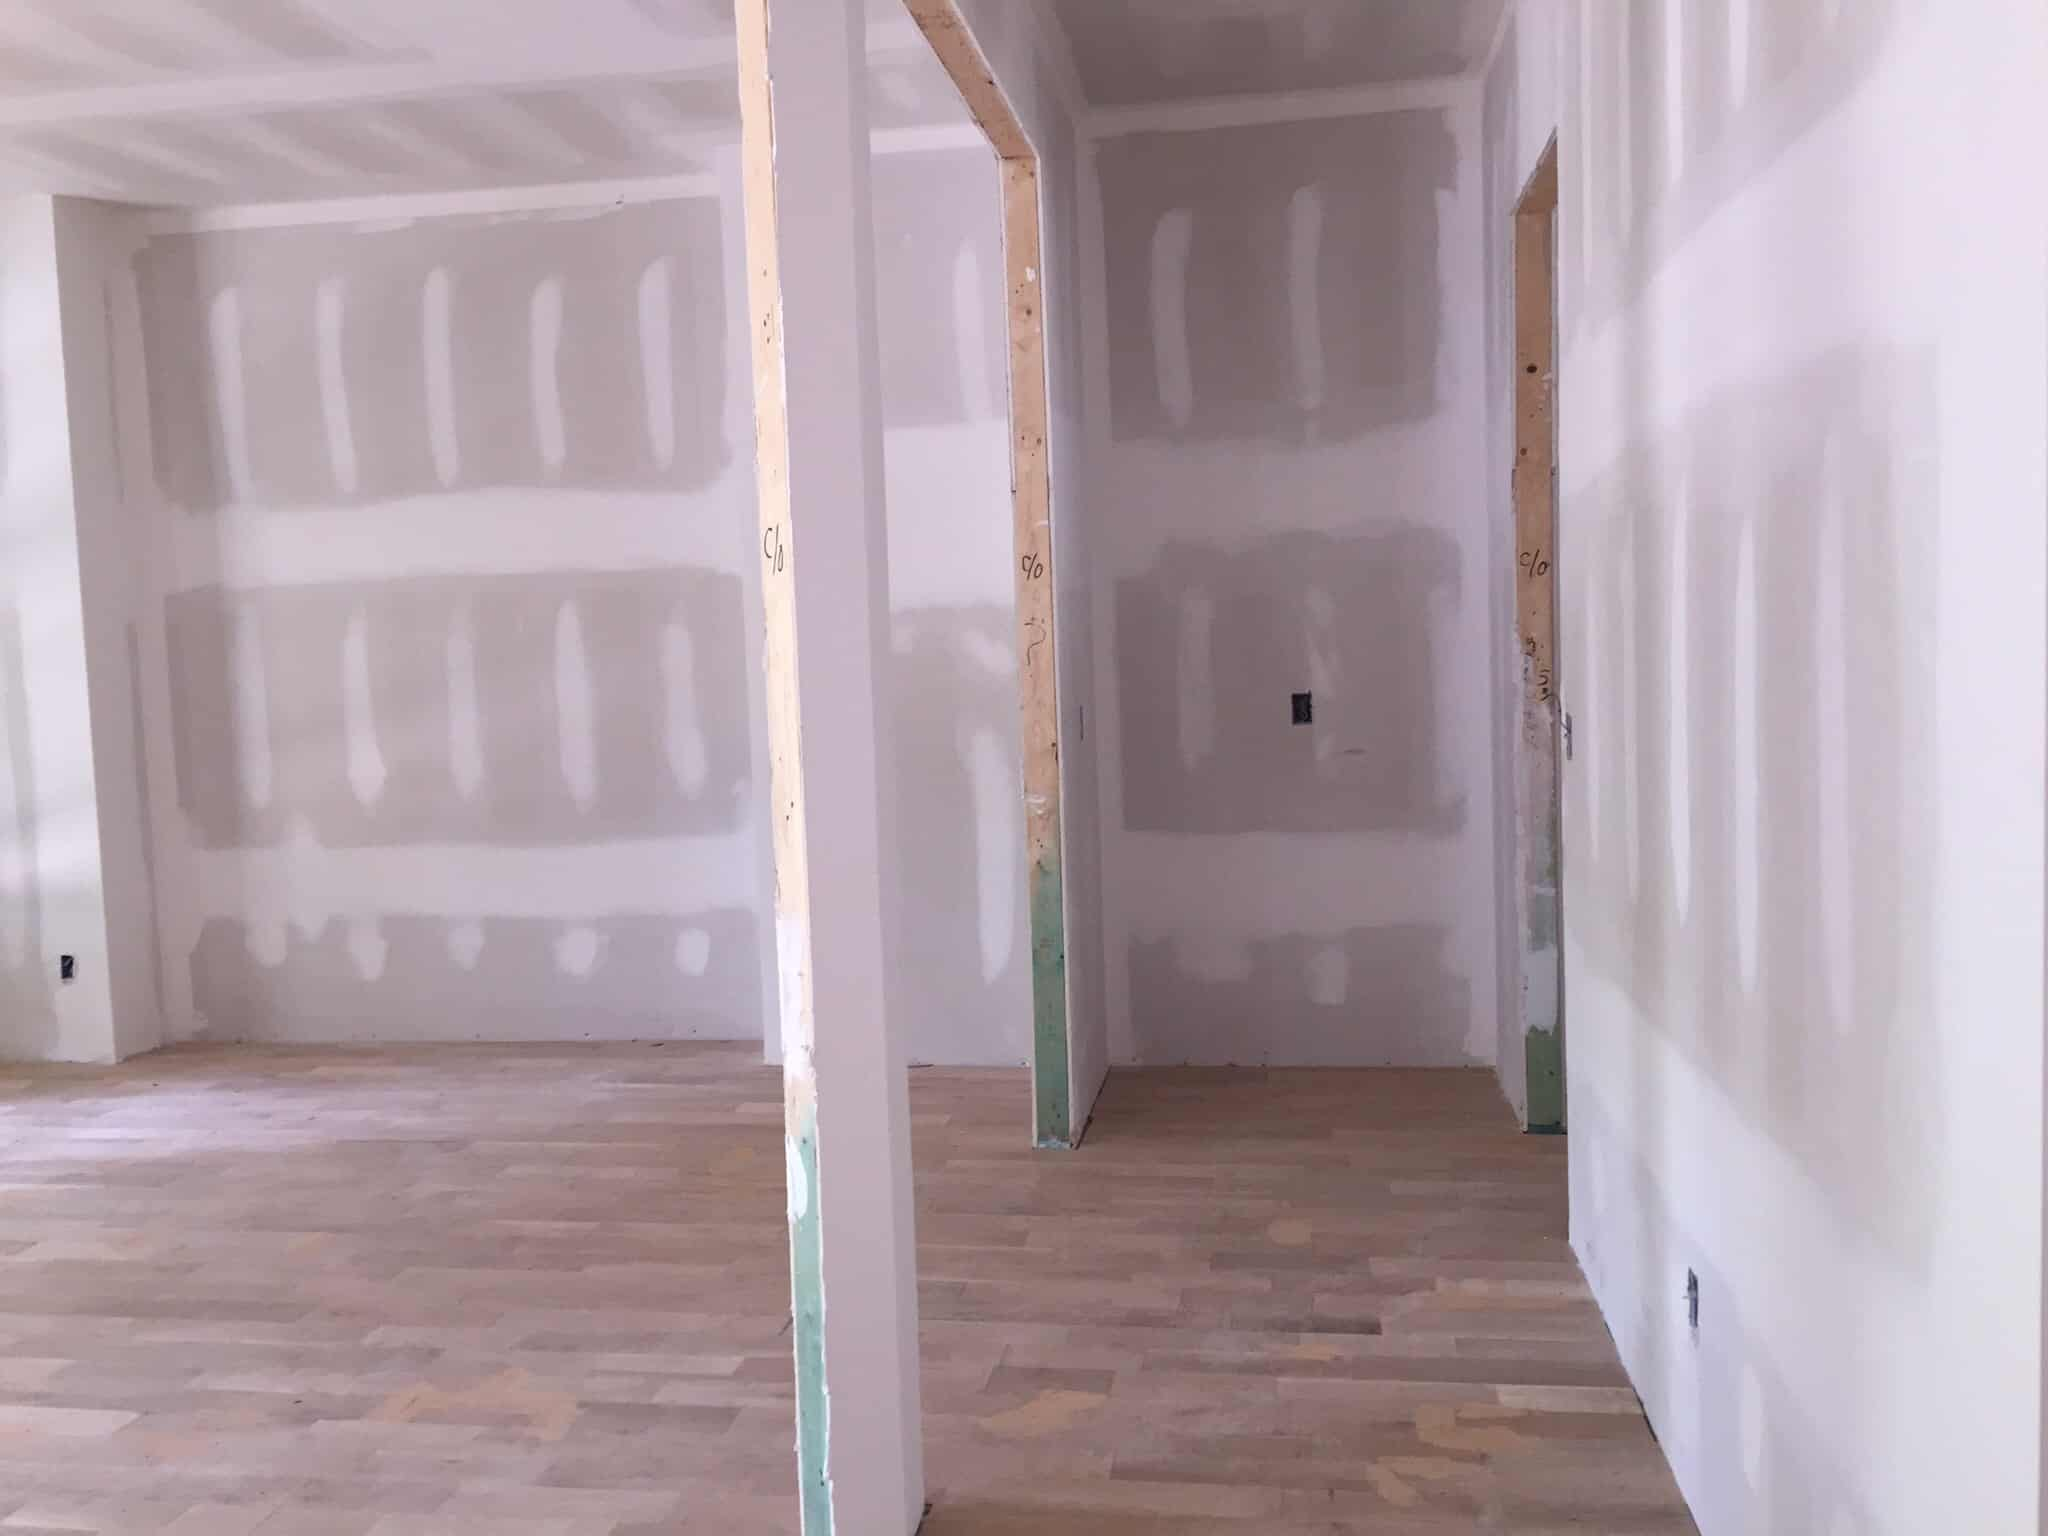 Construction Progress:  To Sheetrock and Beyond!